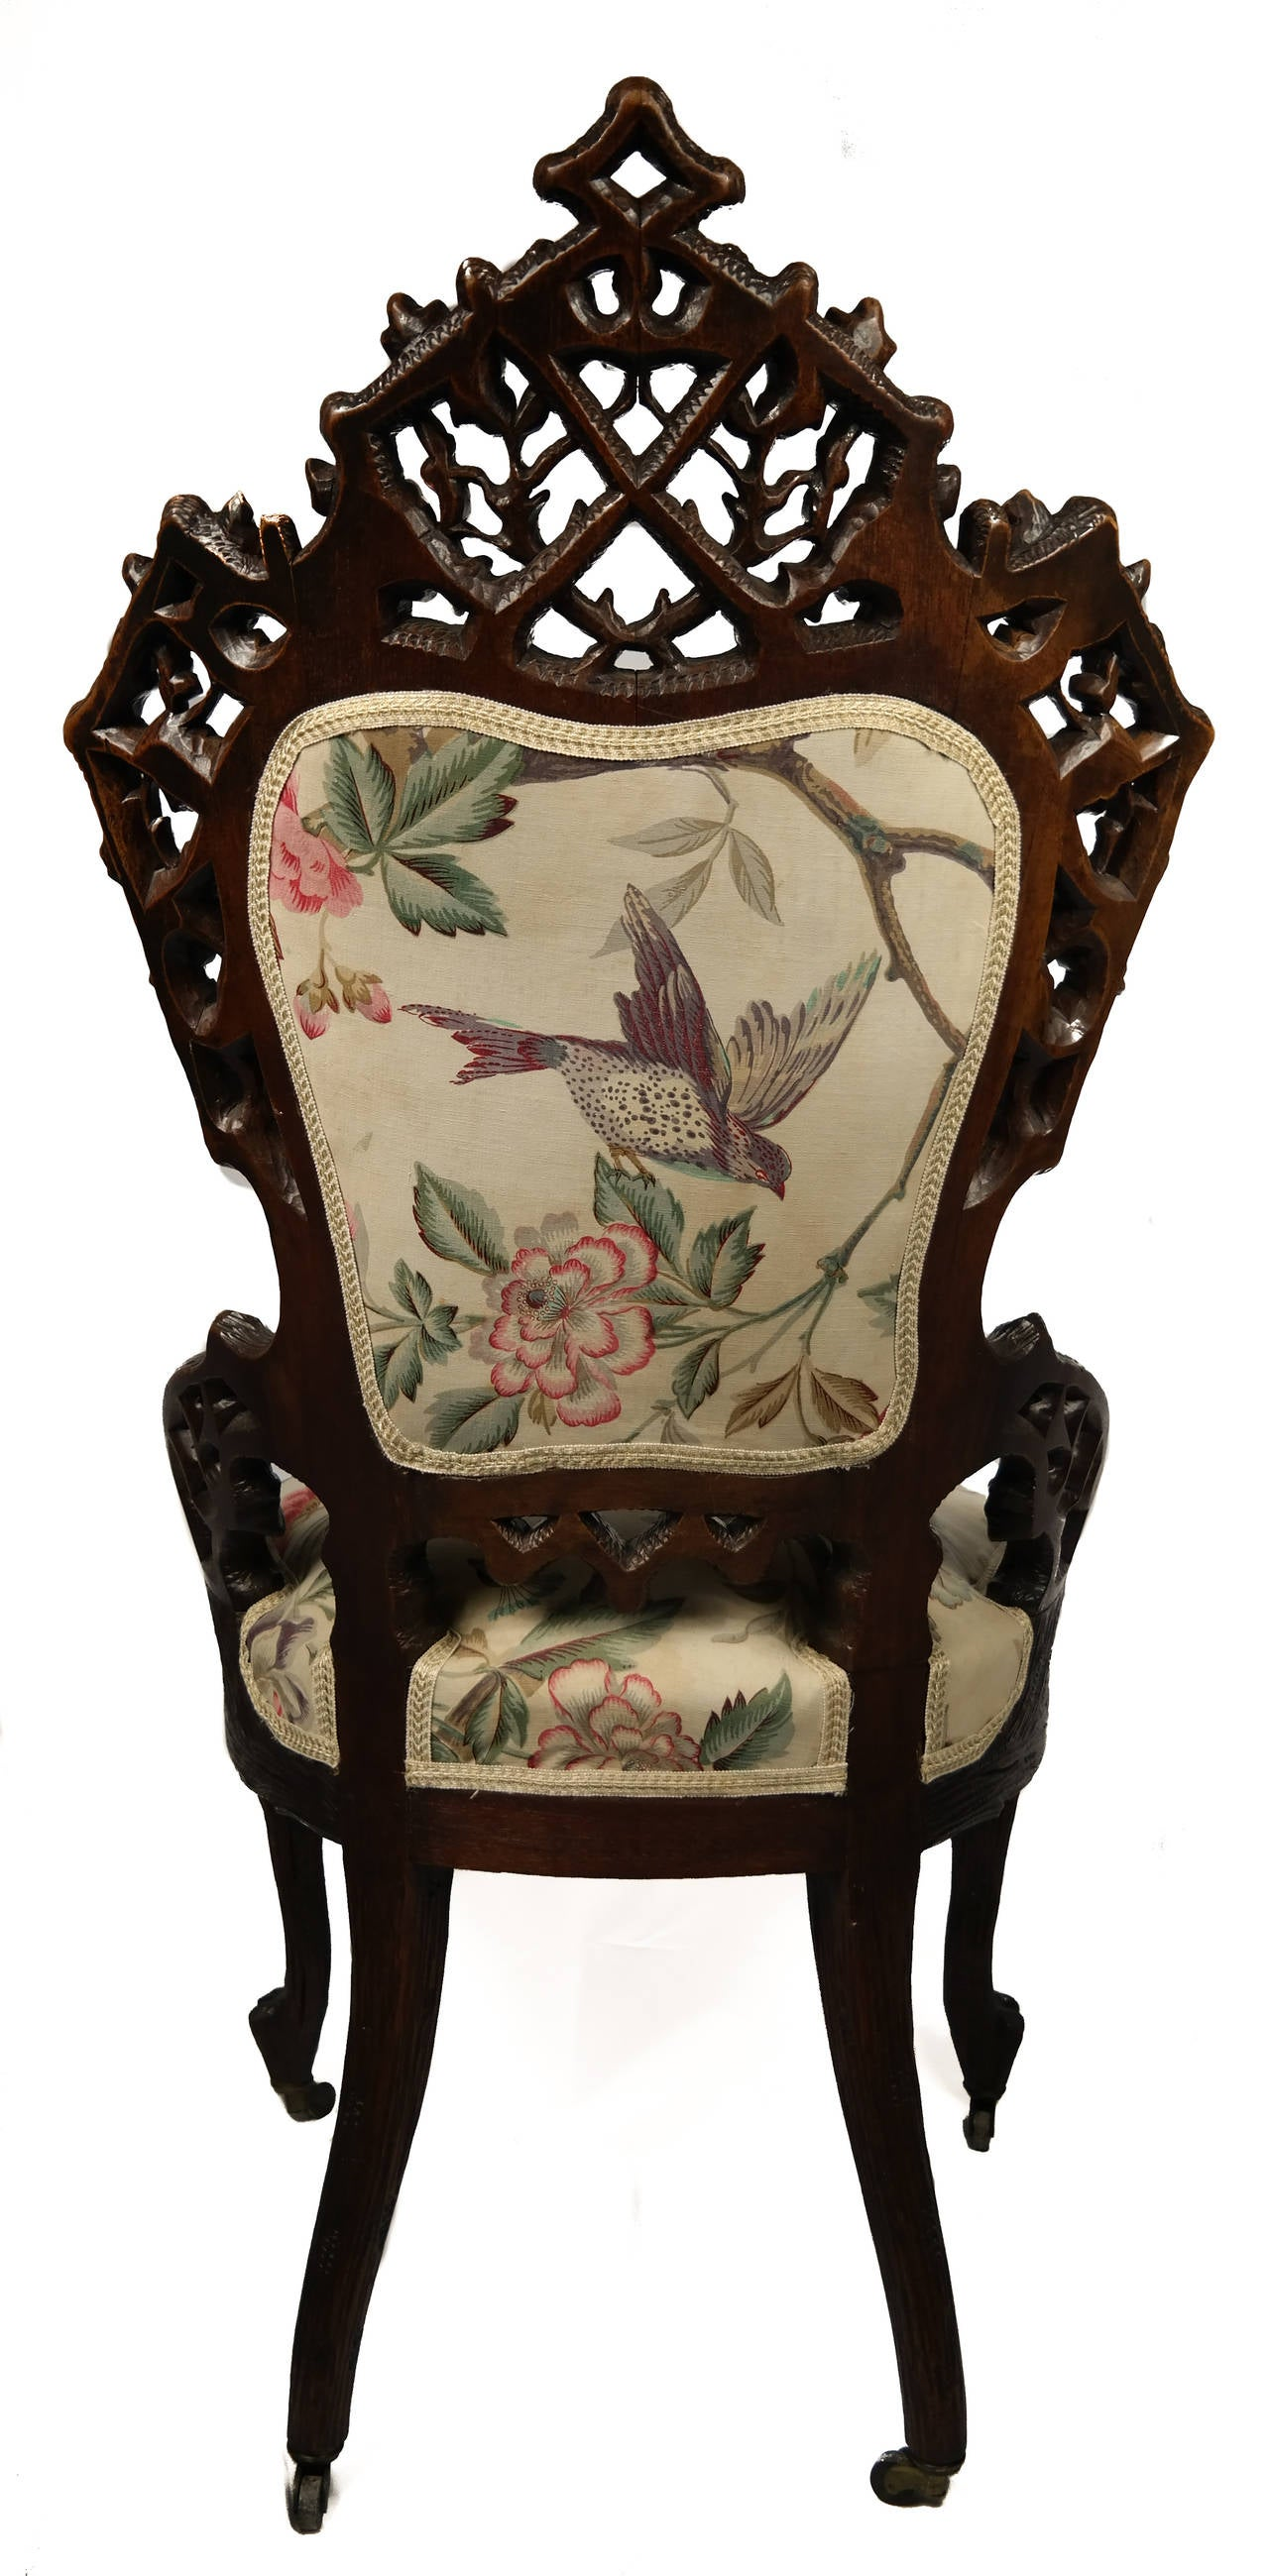 black forest chair for sale at 1stdibs. Black Bedroom Furniture Sets. Home Design Ideas